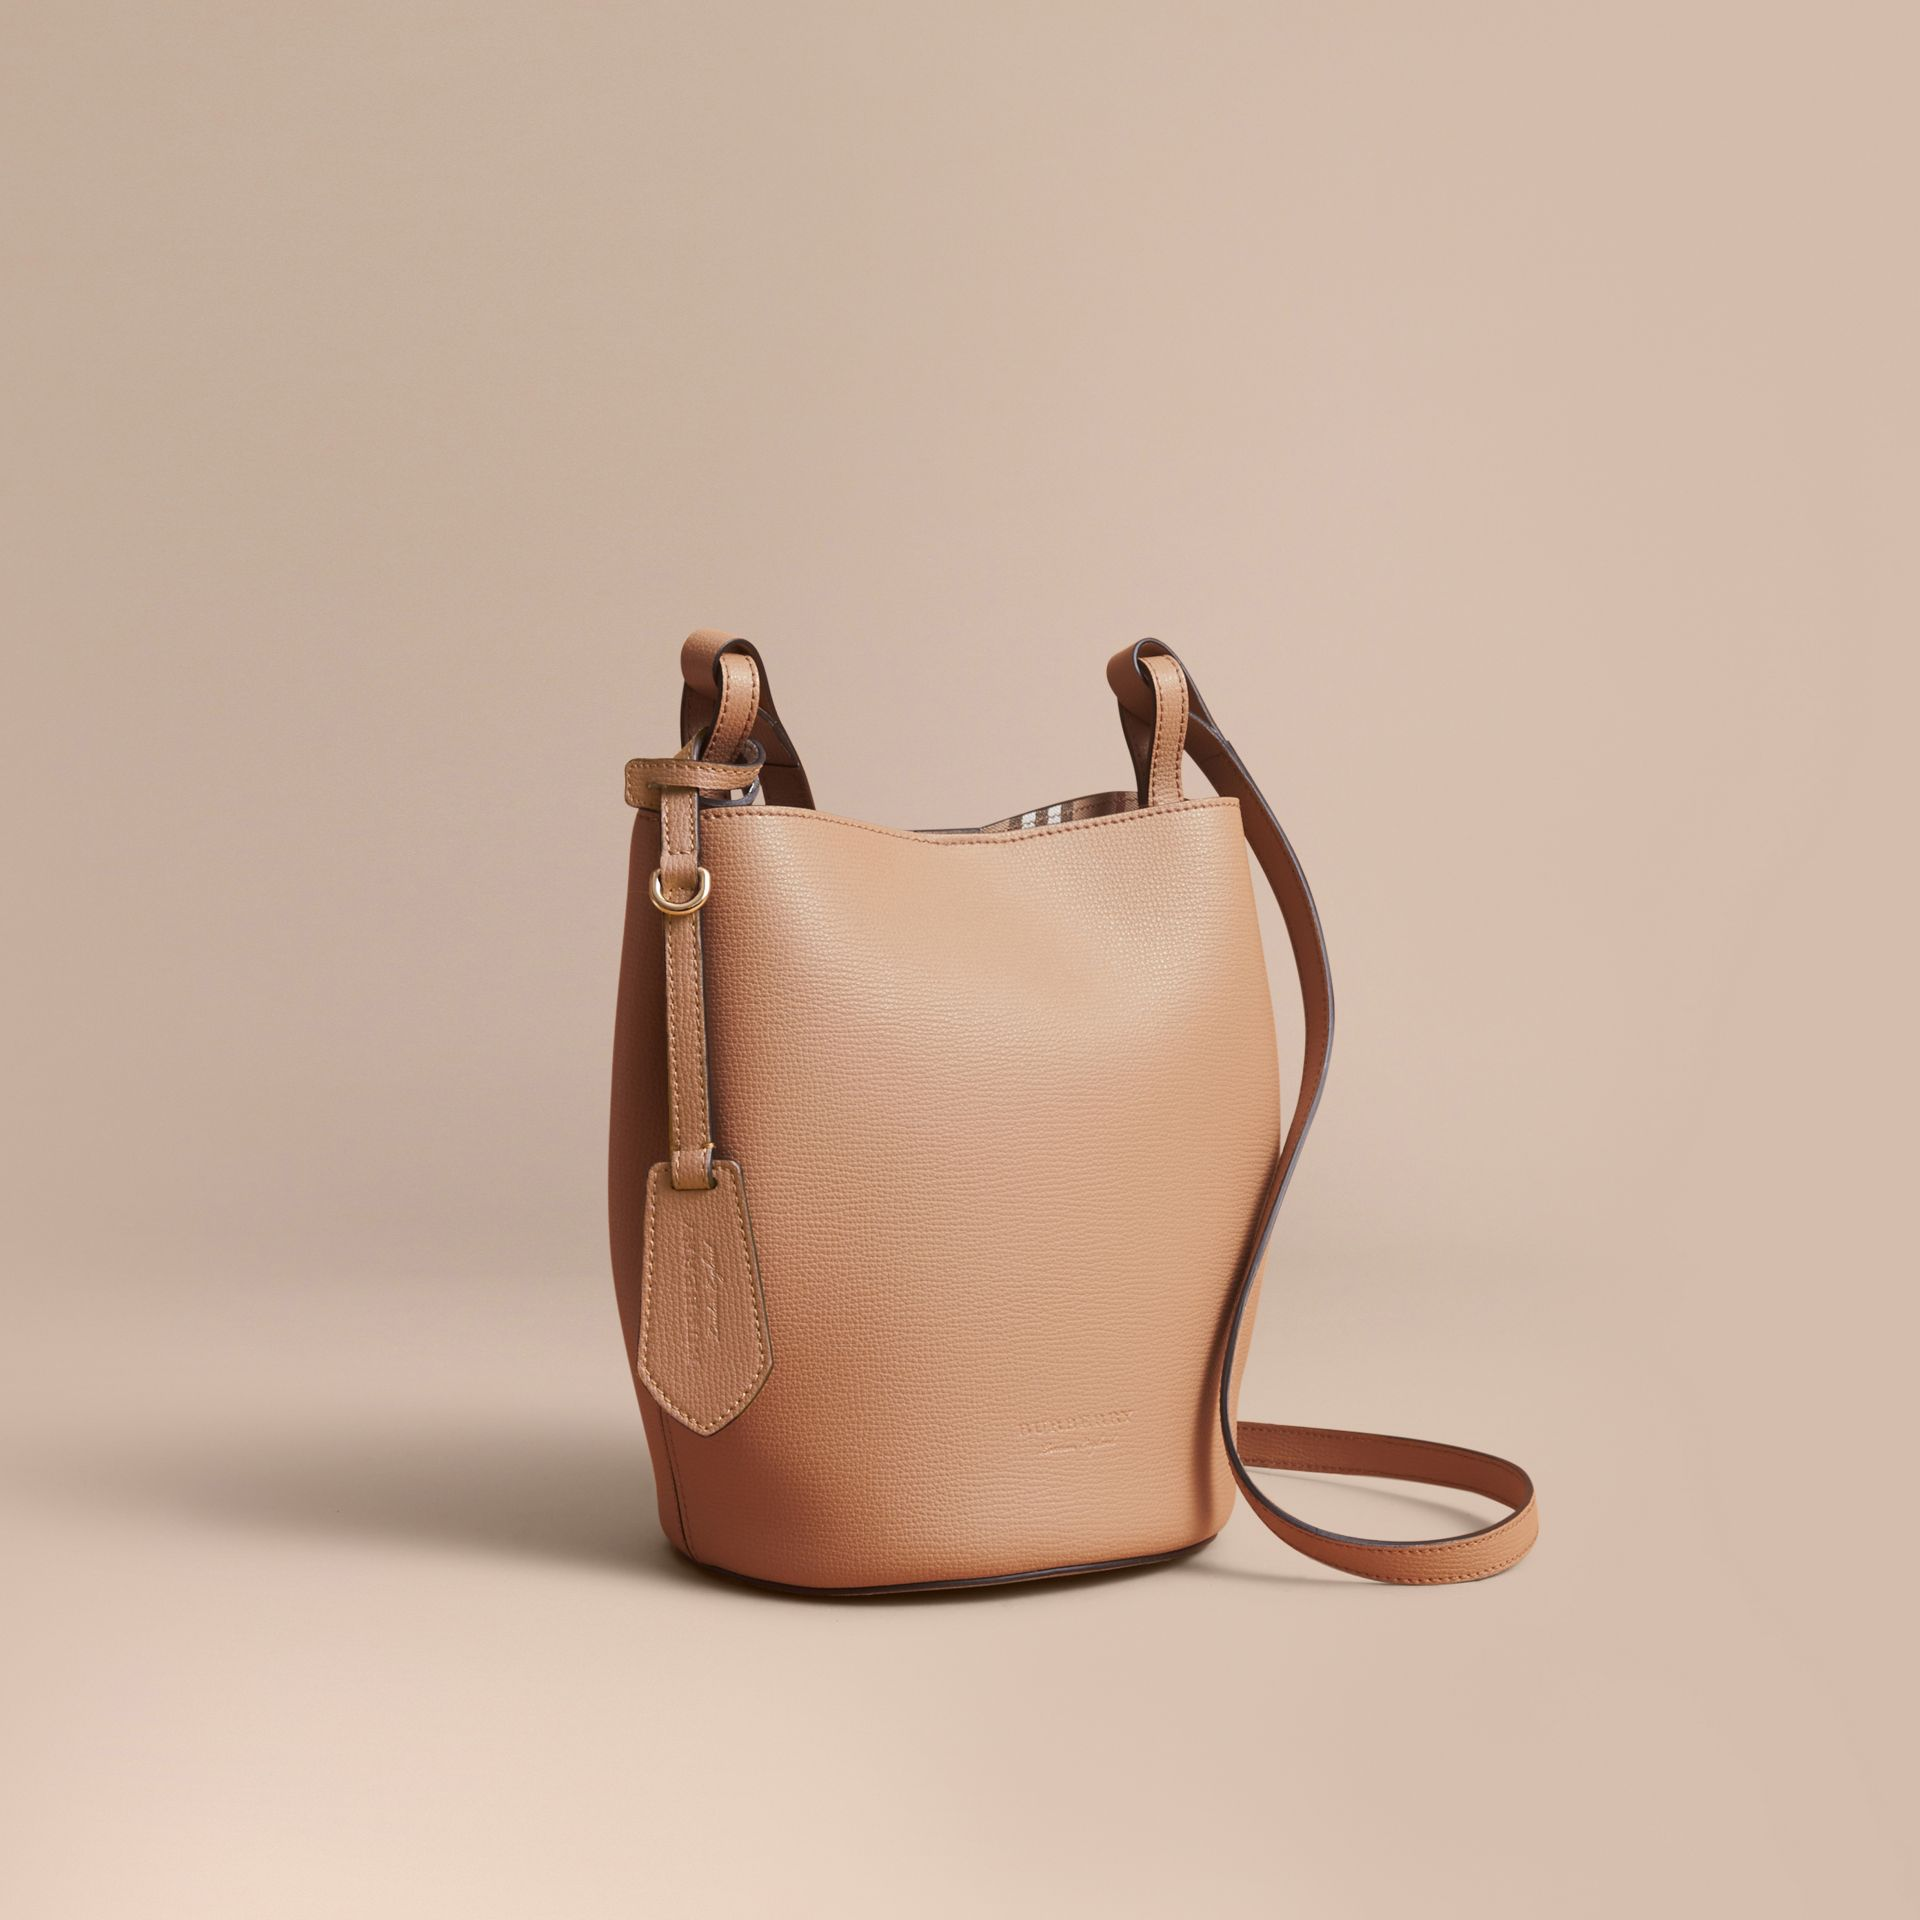 Leather and Haymarket Check Crossbody Bucket Bag in Mid Camel - Women | Burberry - gallery image 1